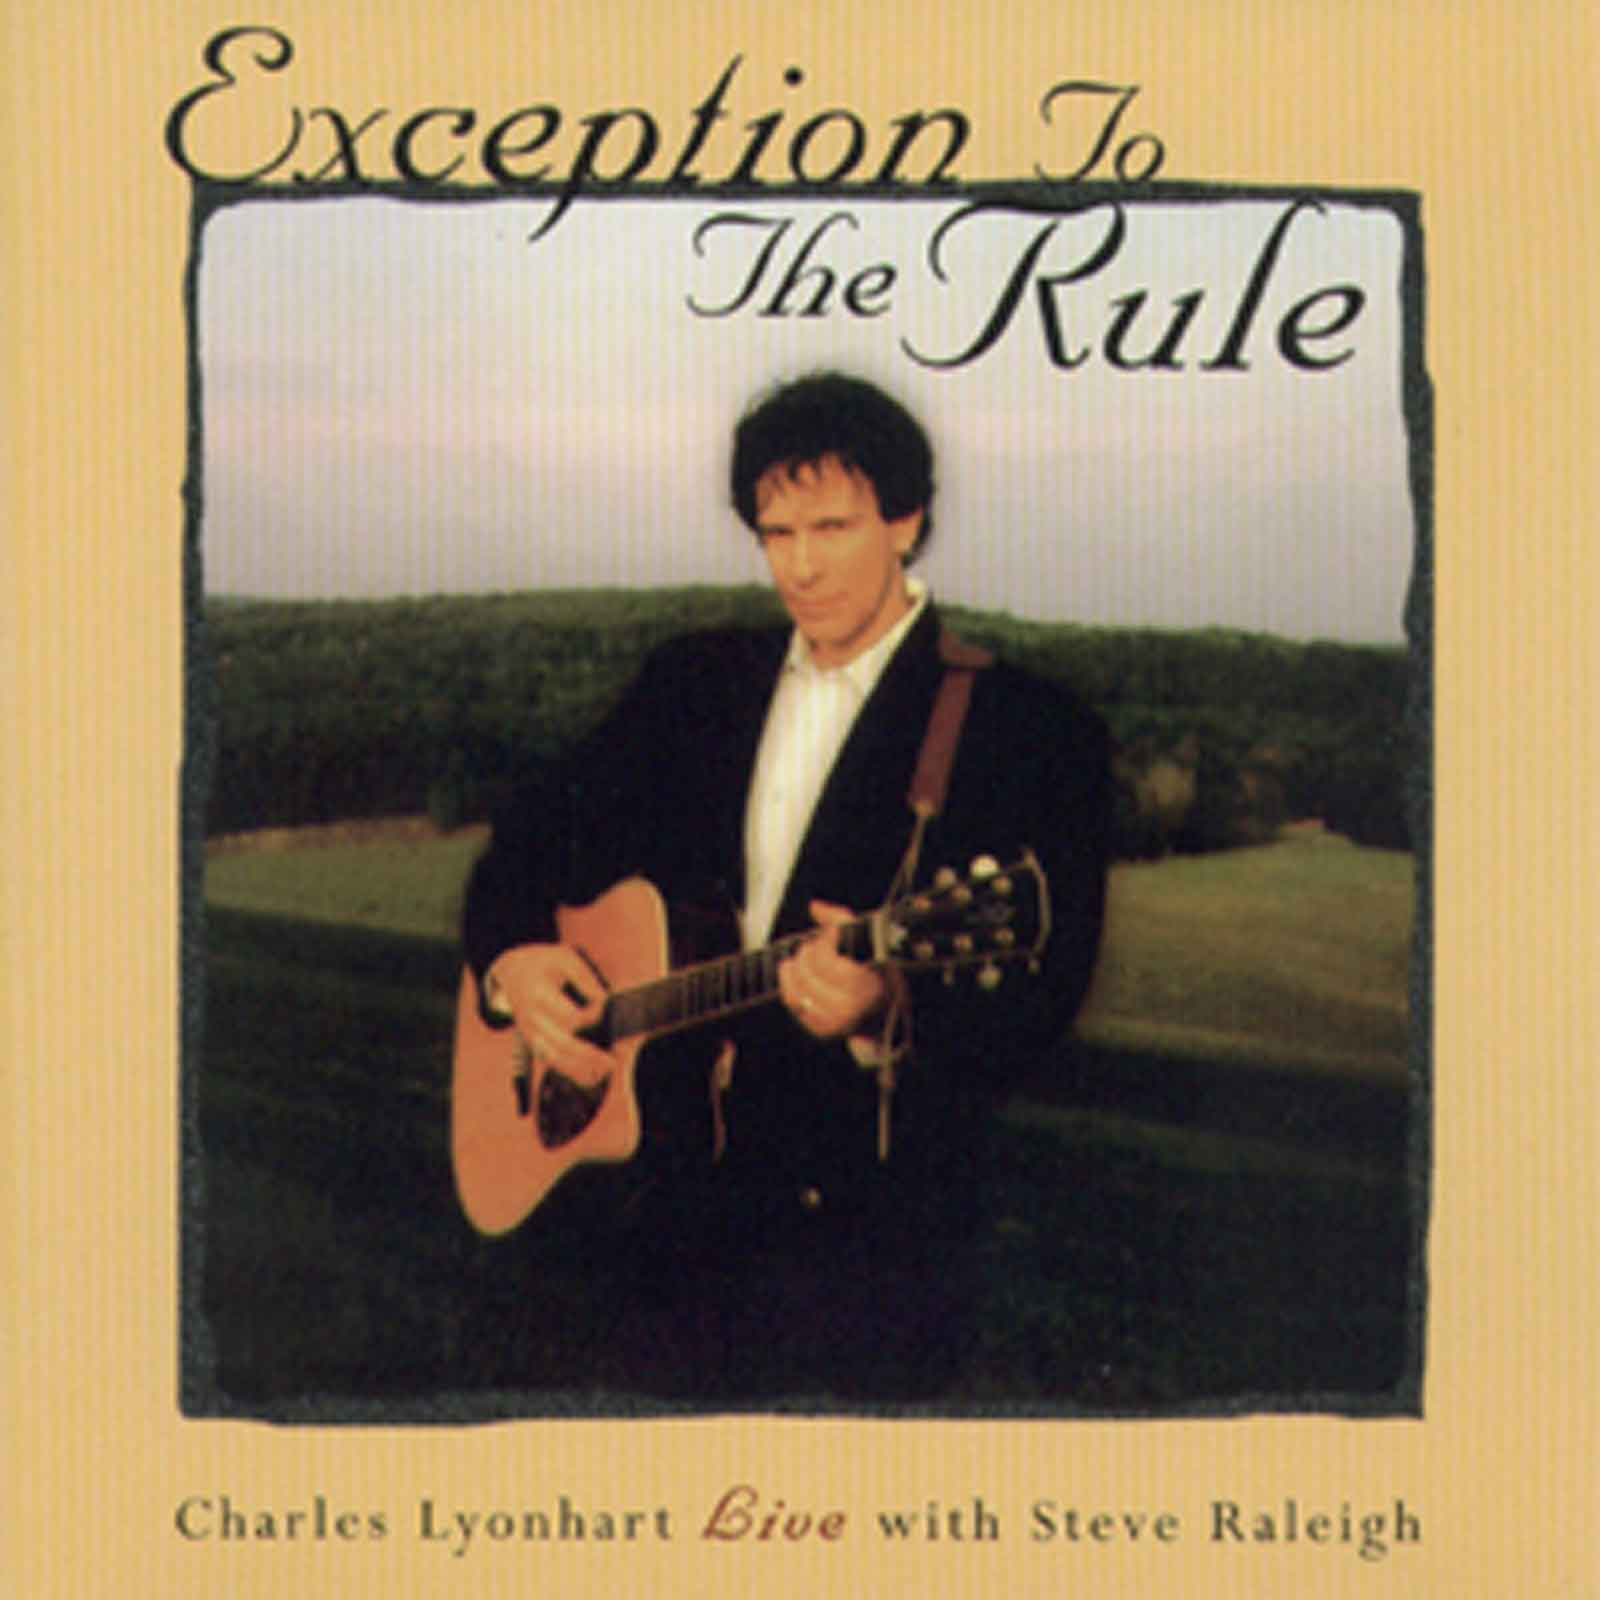 Charles Lyonheart - Exception To The Rule - 1998